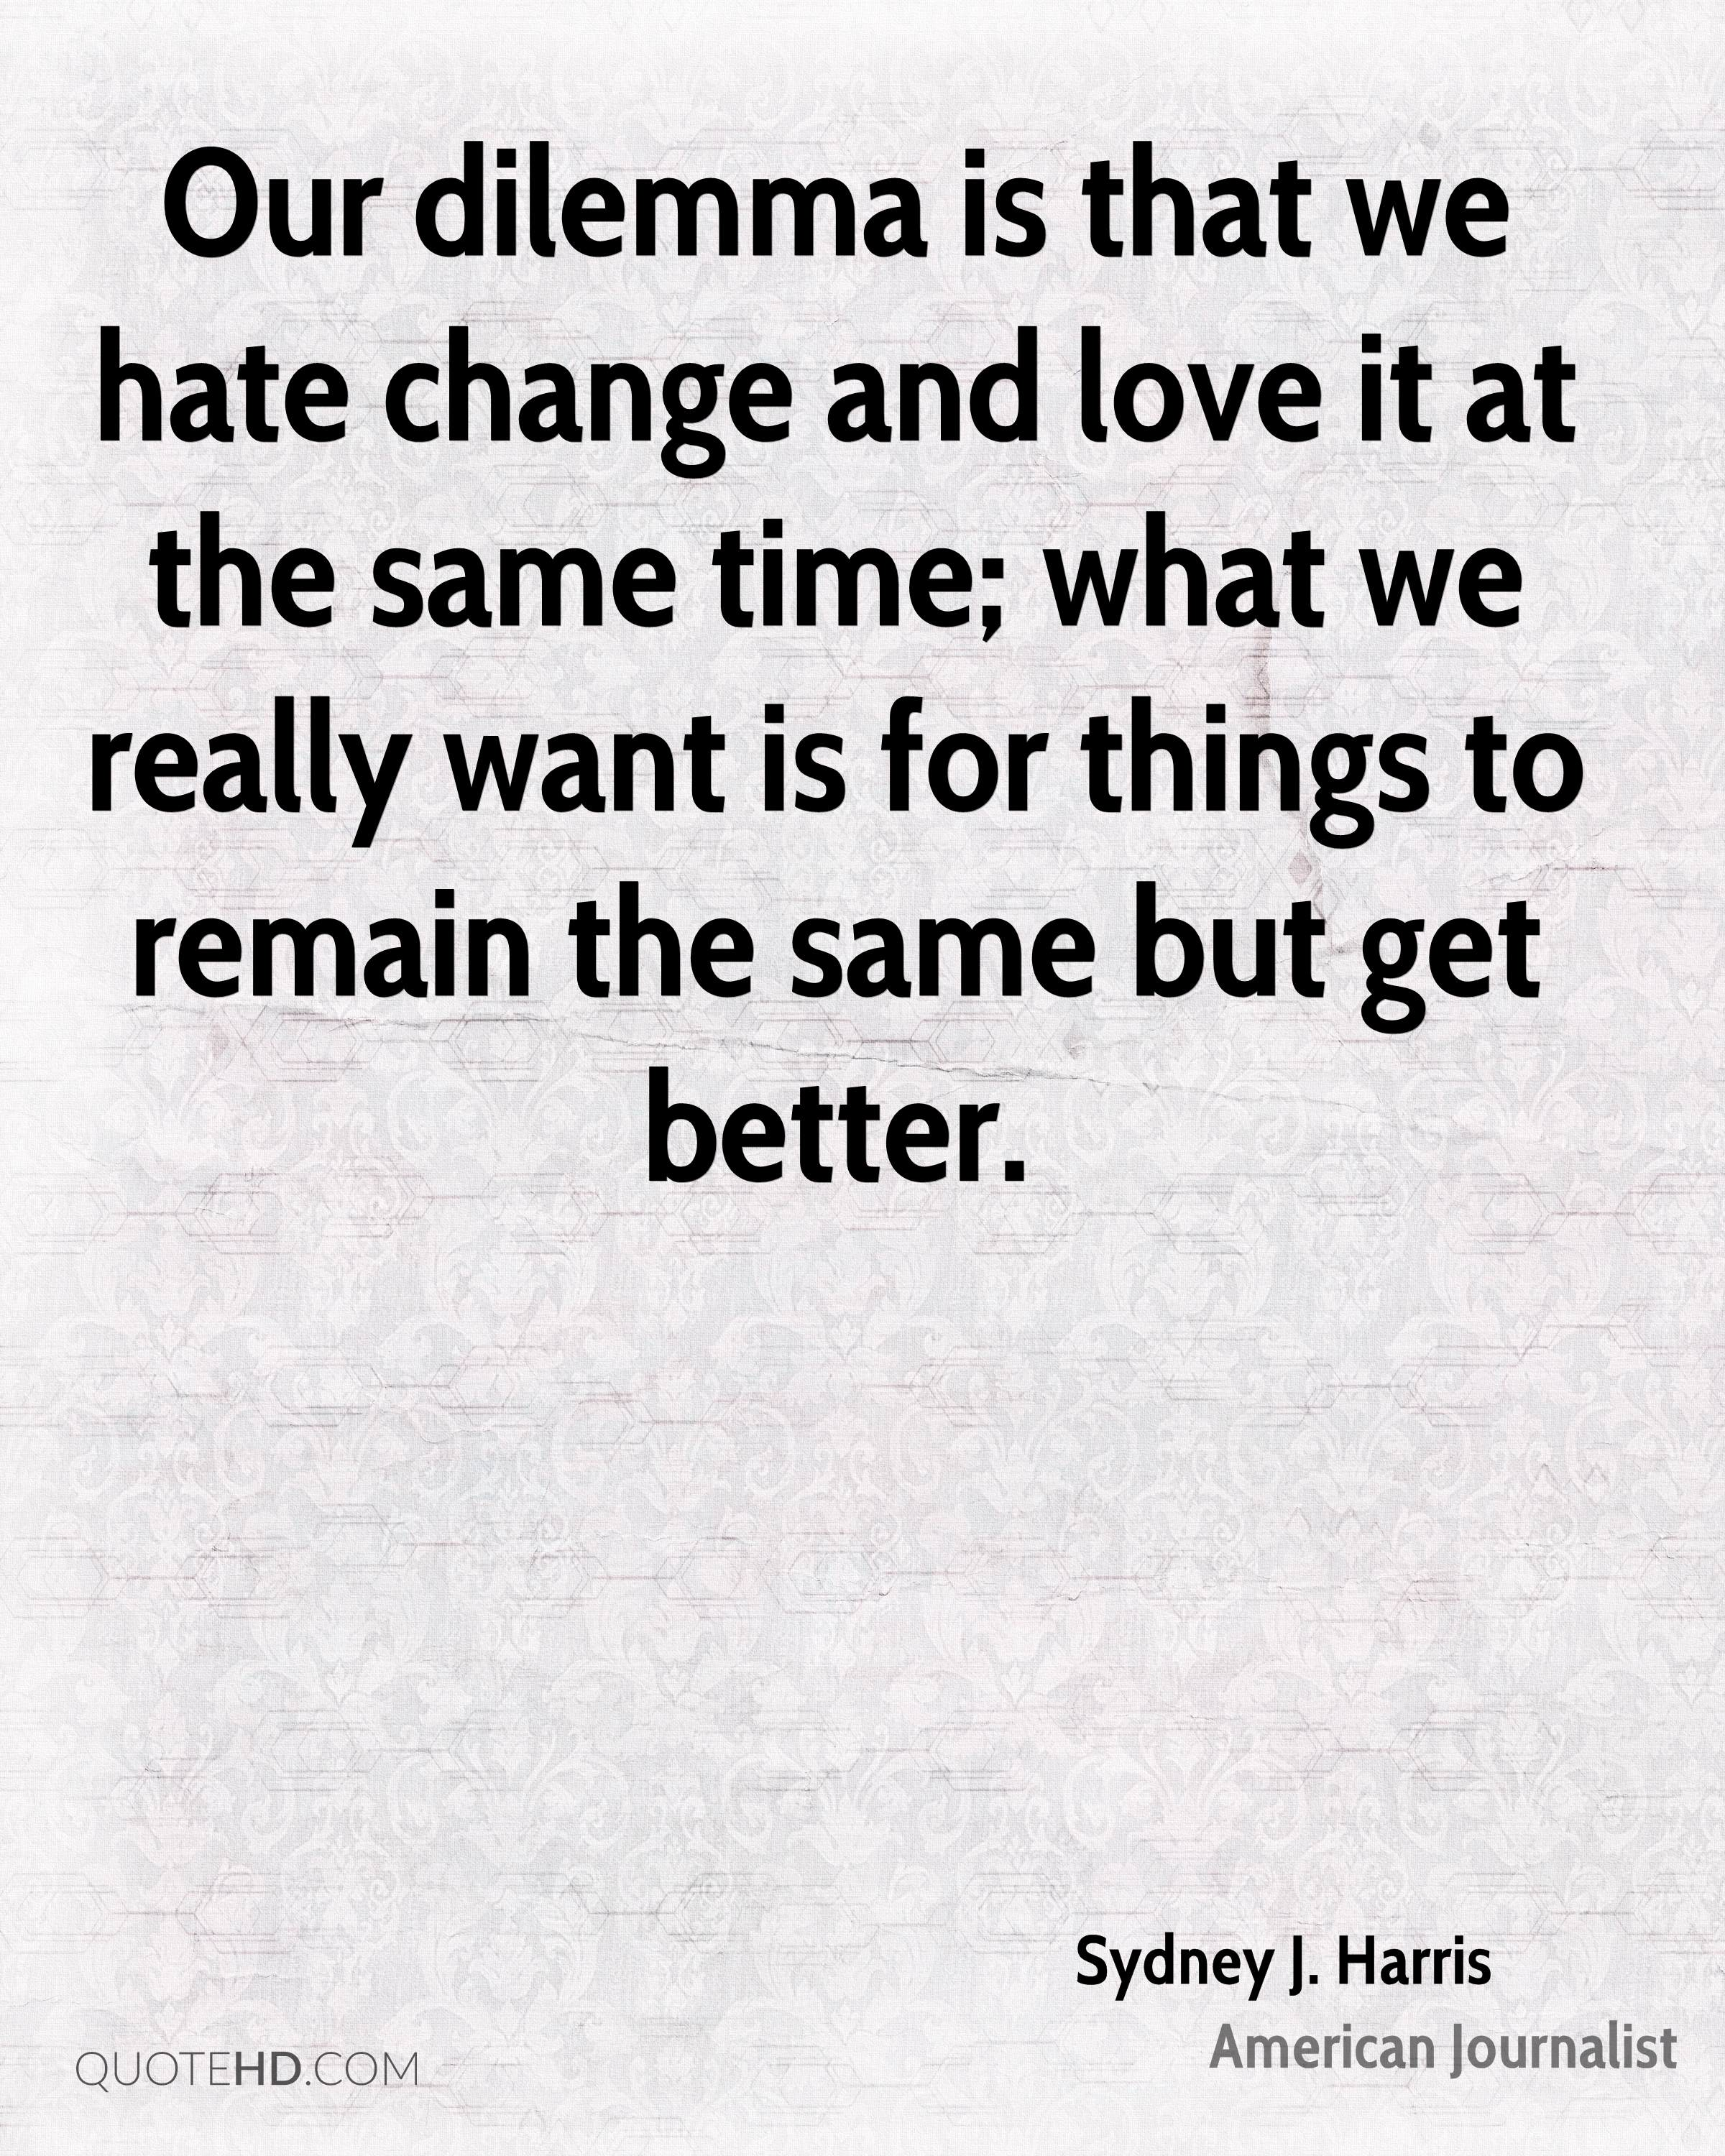 Our dilemma is that we hate change and love it at the same time; what we really want is for things to remain the same but get better.